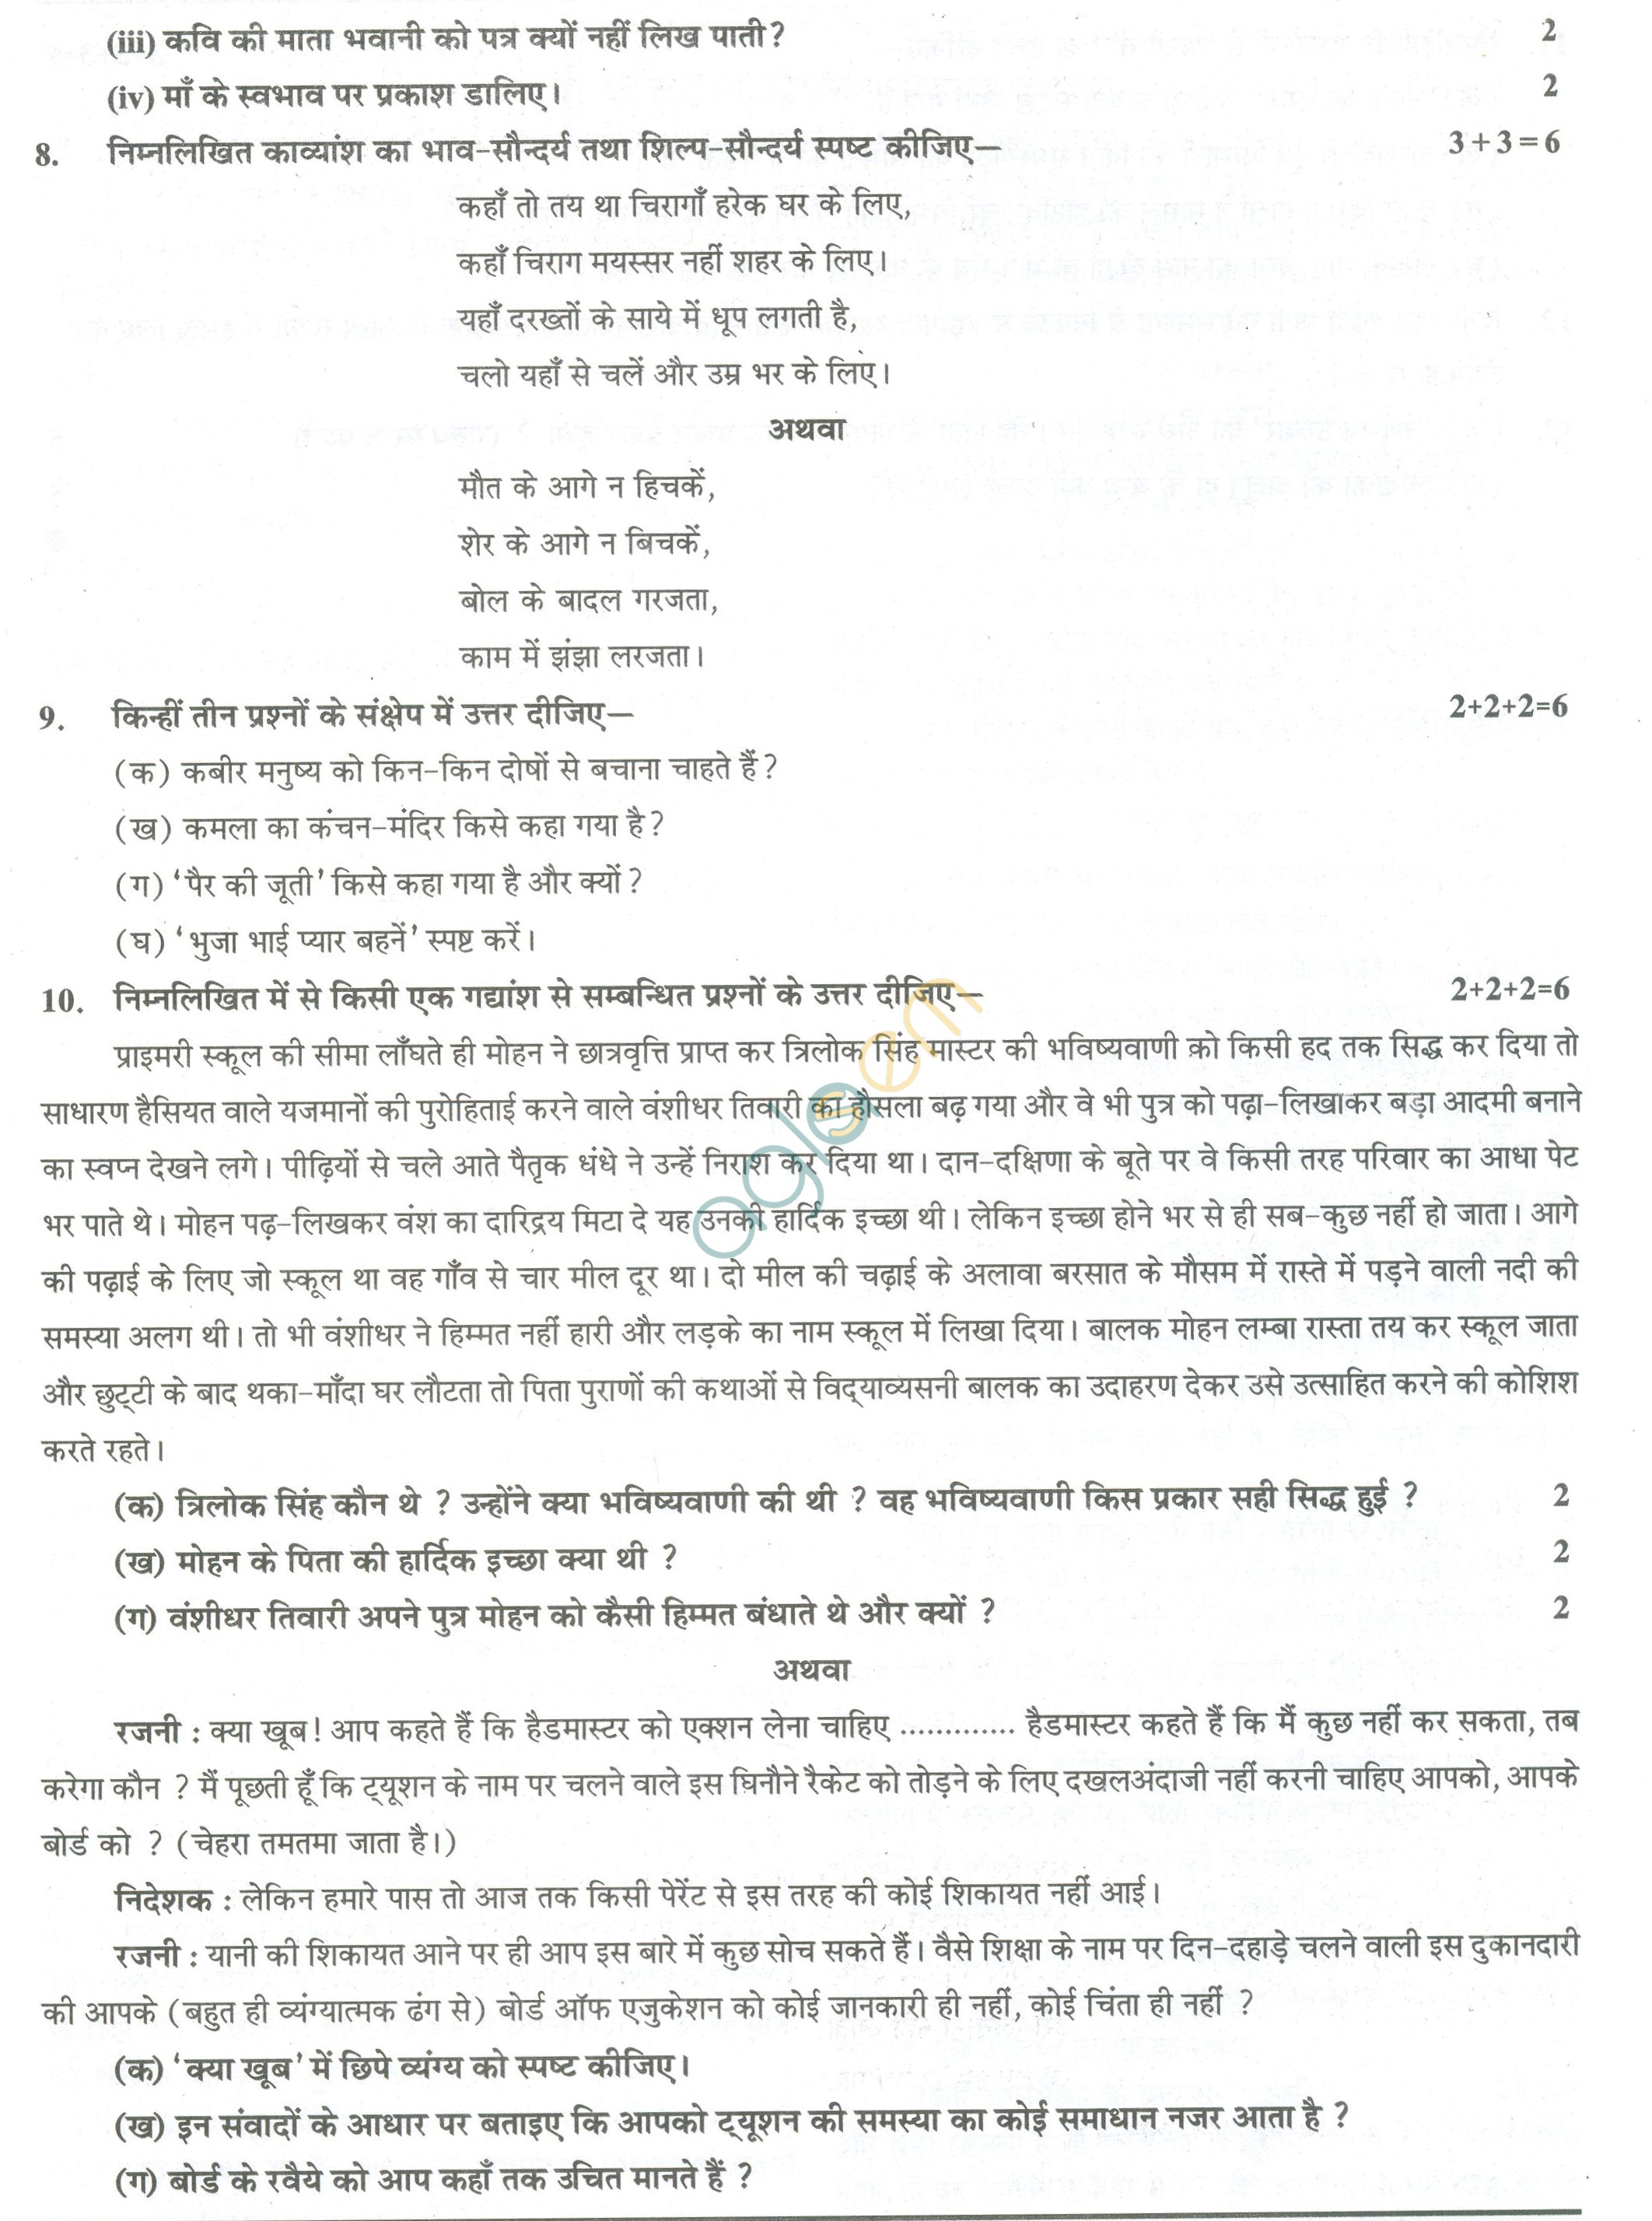 CBSE Sample Papers for Class 11 Hindi (Solved) - Set E